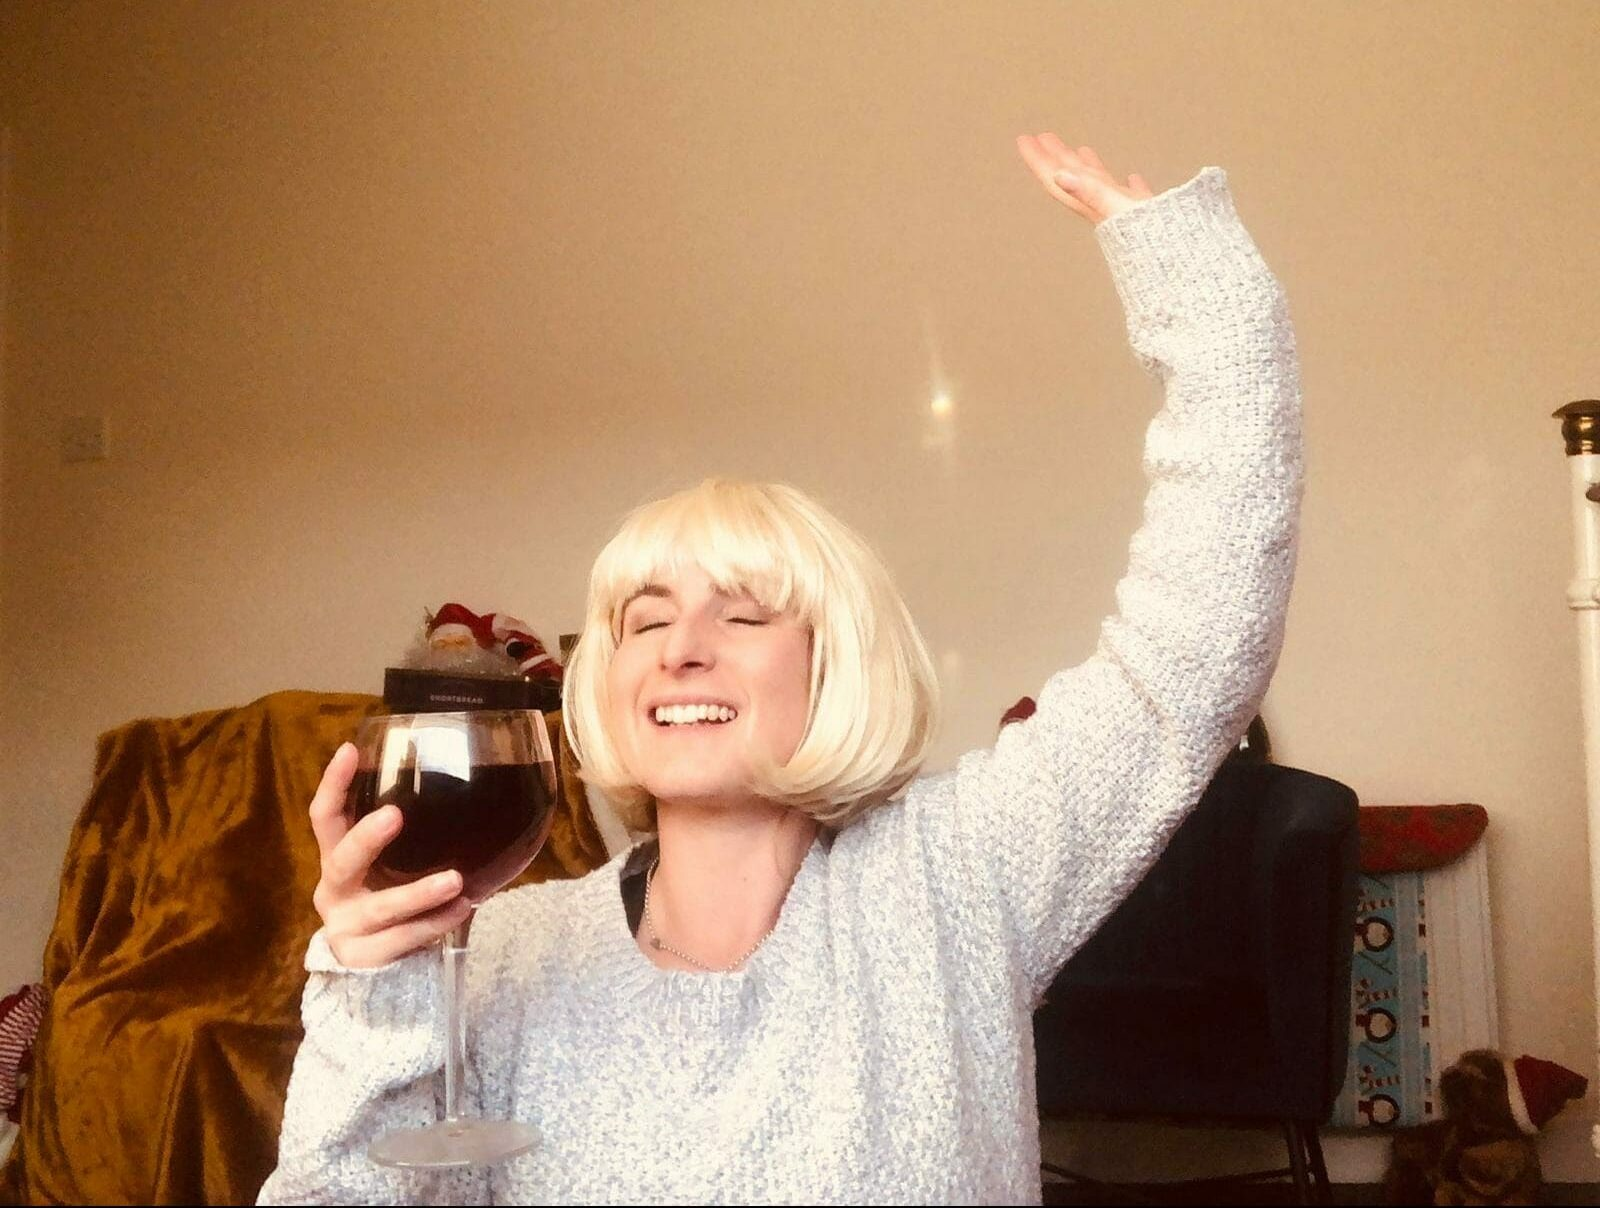 Delegate wearing a blonde wig recreating a famous Christmas photo for one of Orangeworks virtual Christmas games for work.